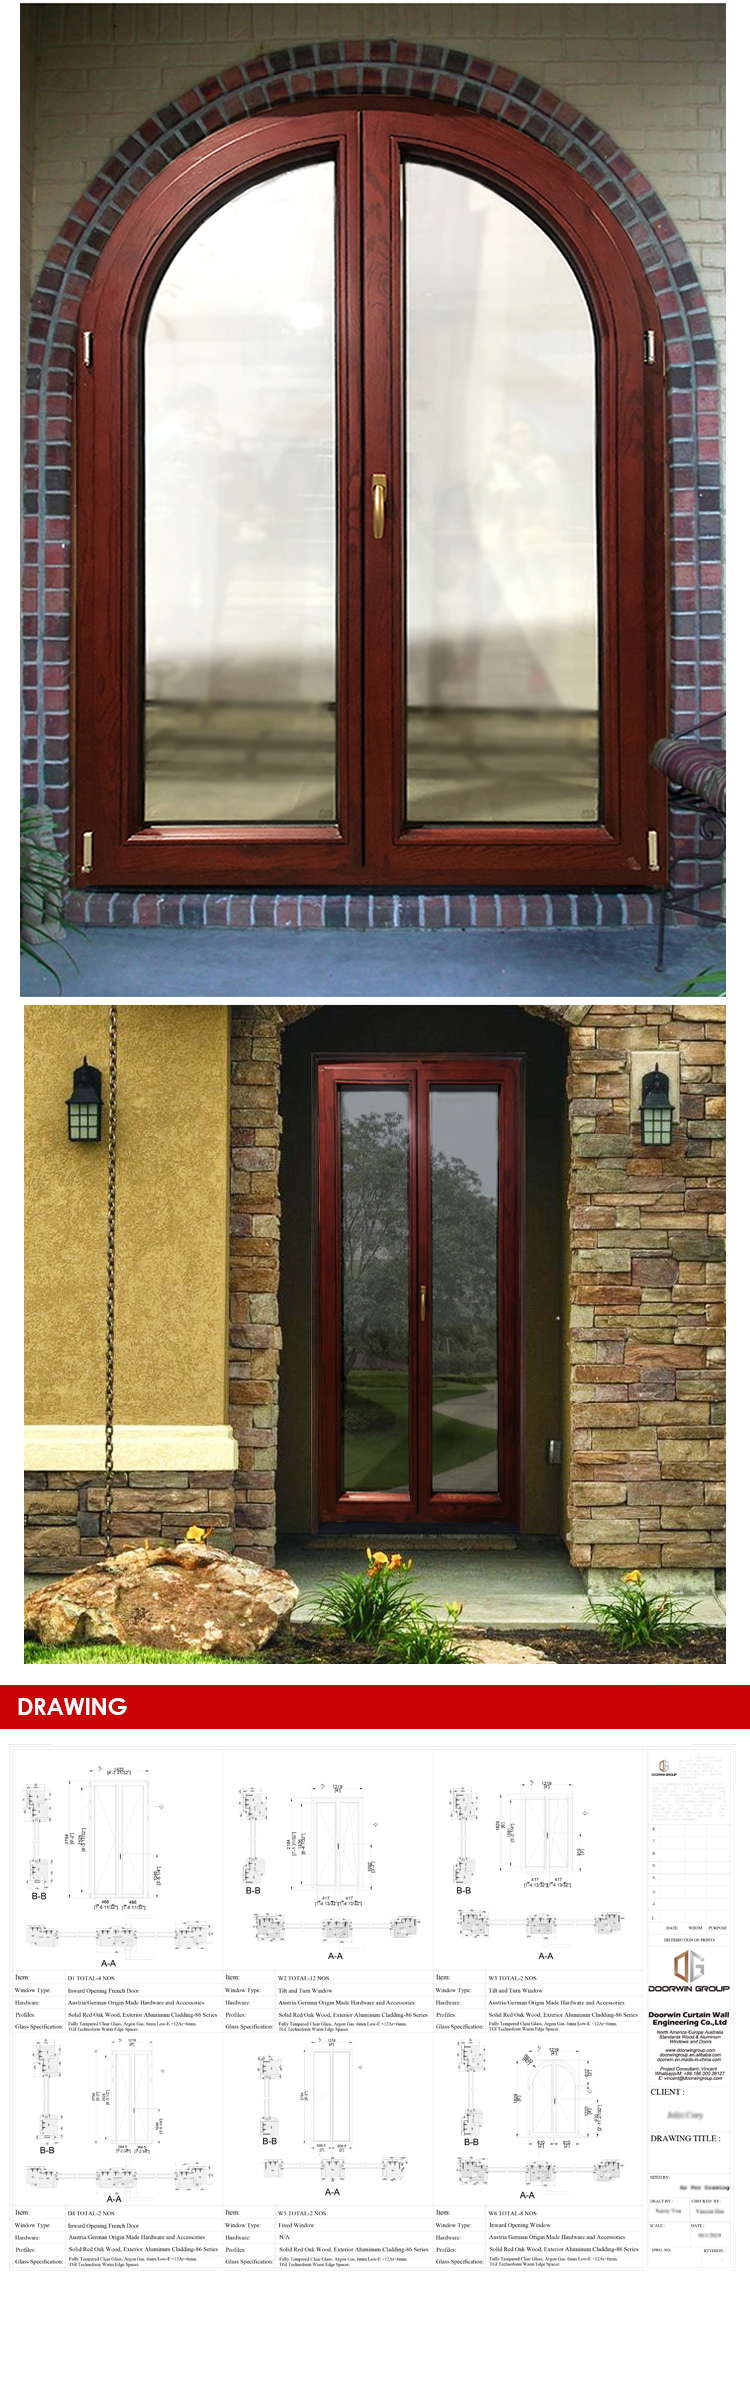 China offer cheap long life eight foot french doors double pane exterior insulated